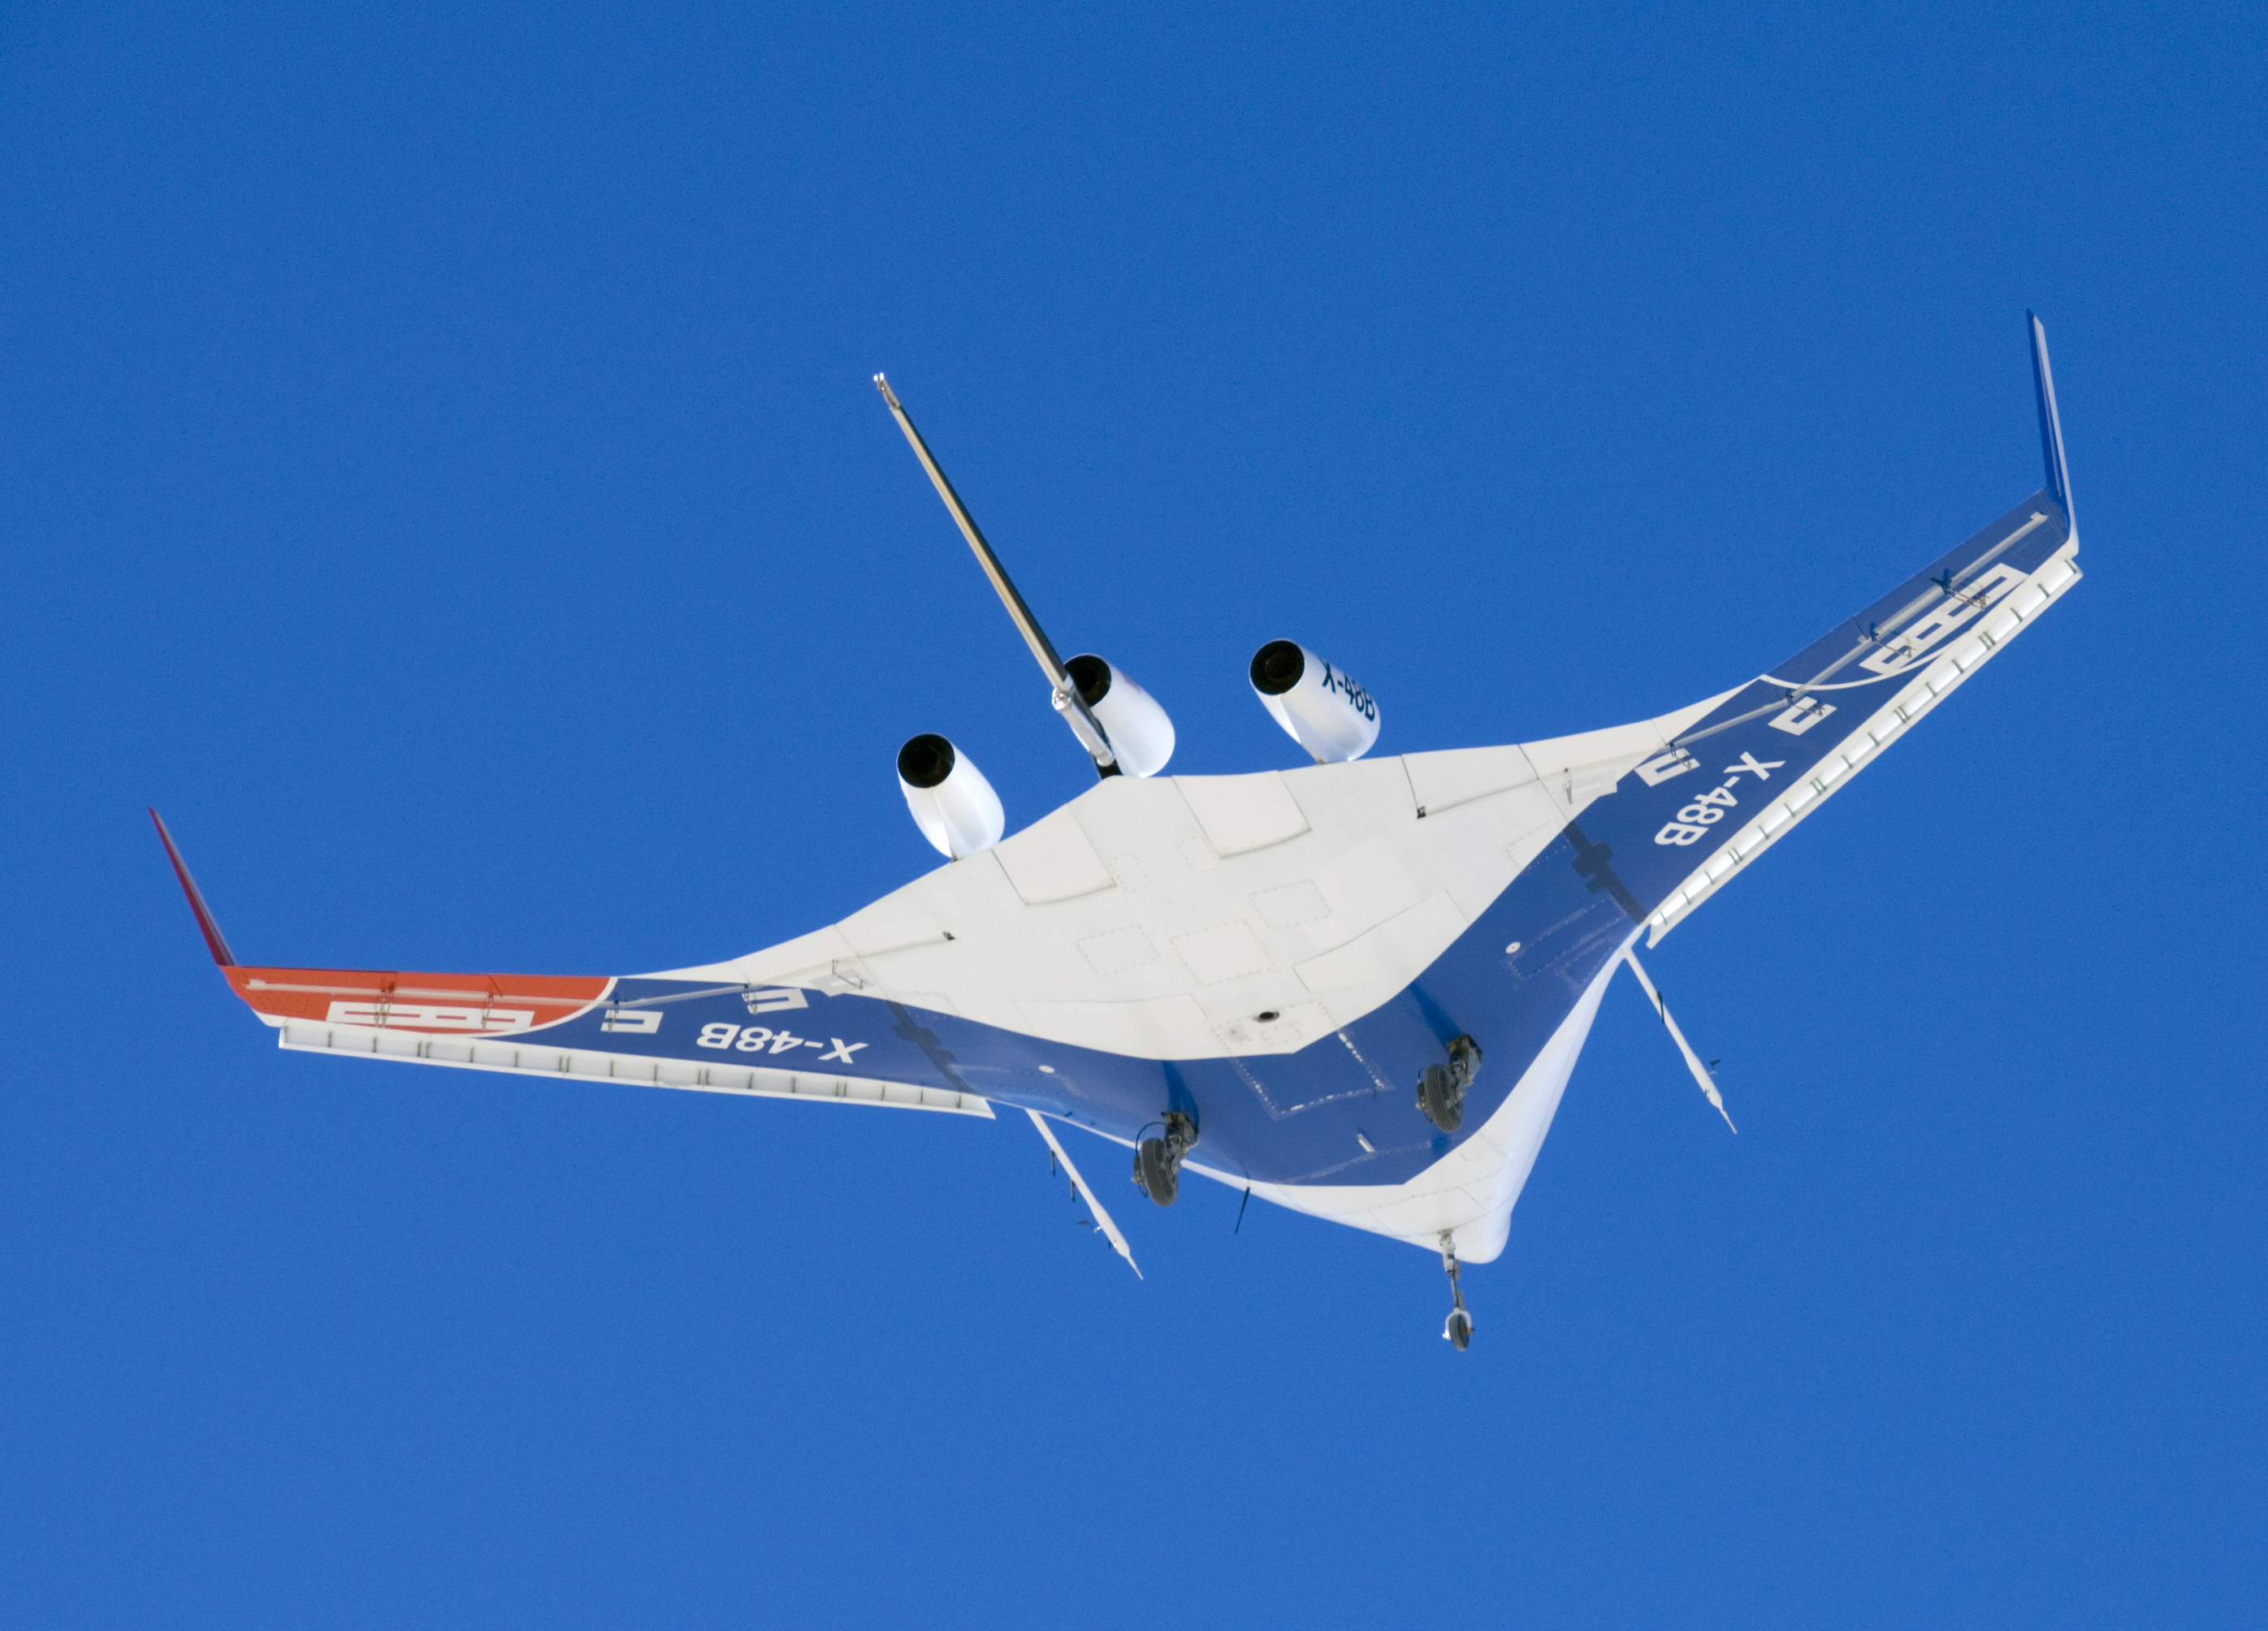 nasa x 48 drone aircraft - photo #19